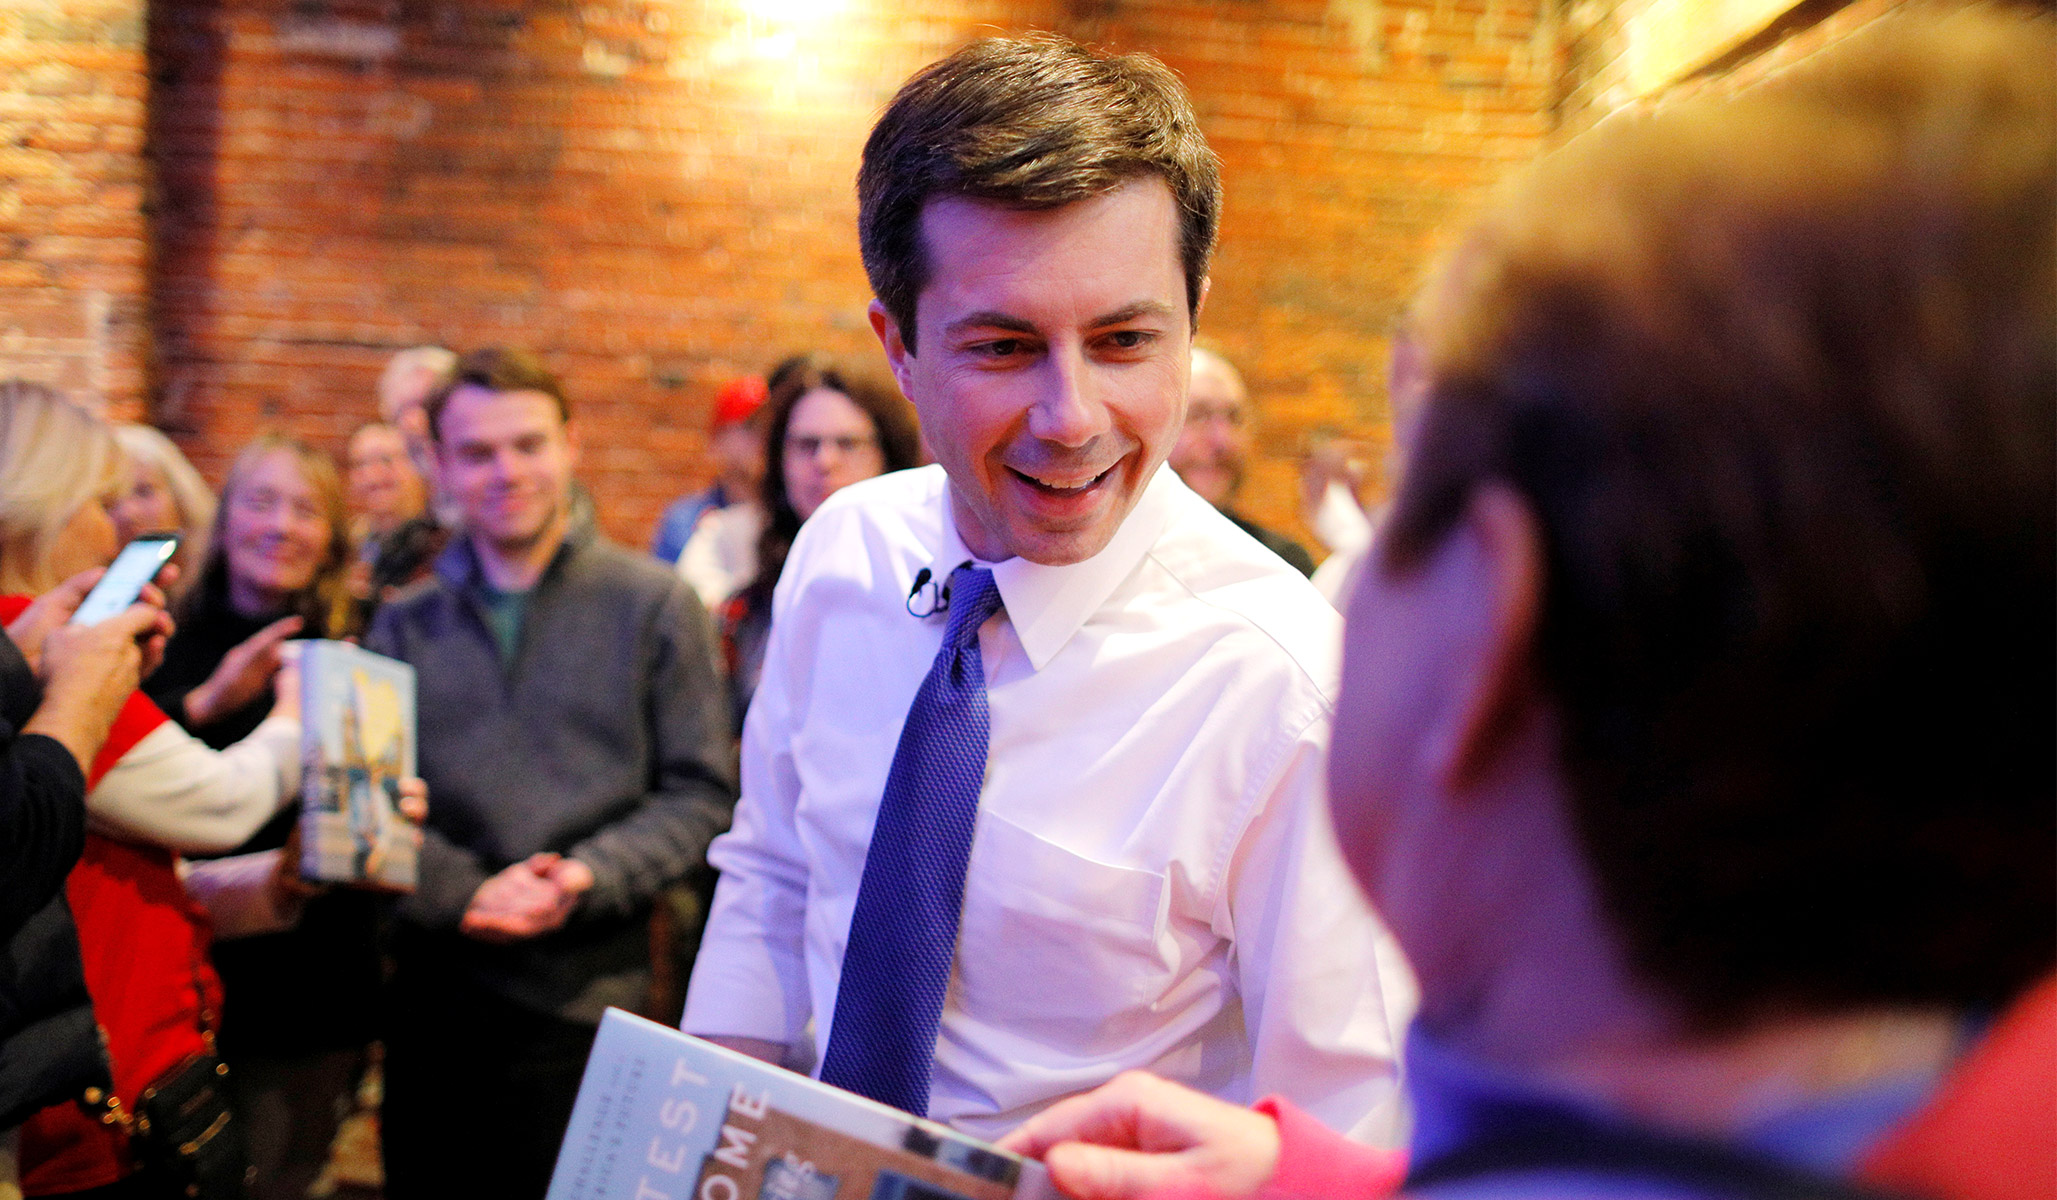 Twenty Things You Probably Didn't Know About Pete Buttigieg